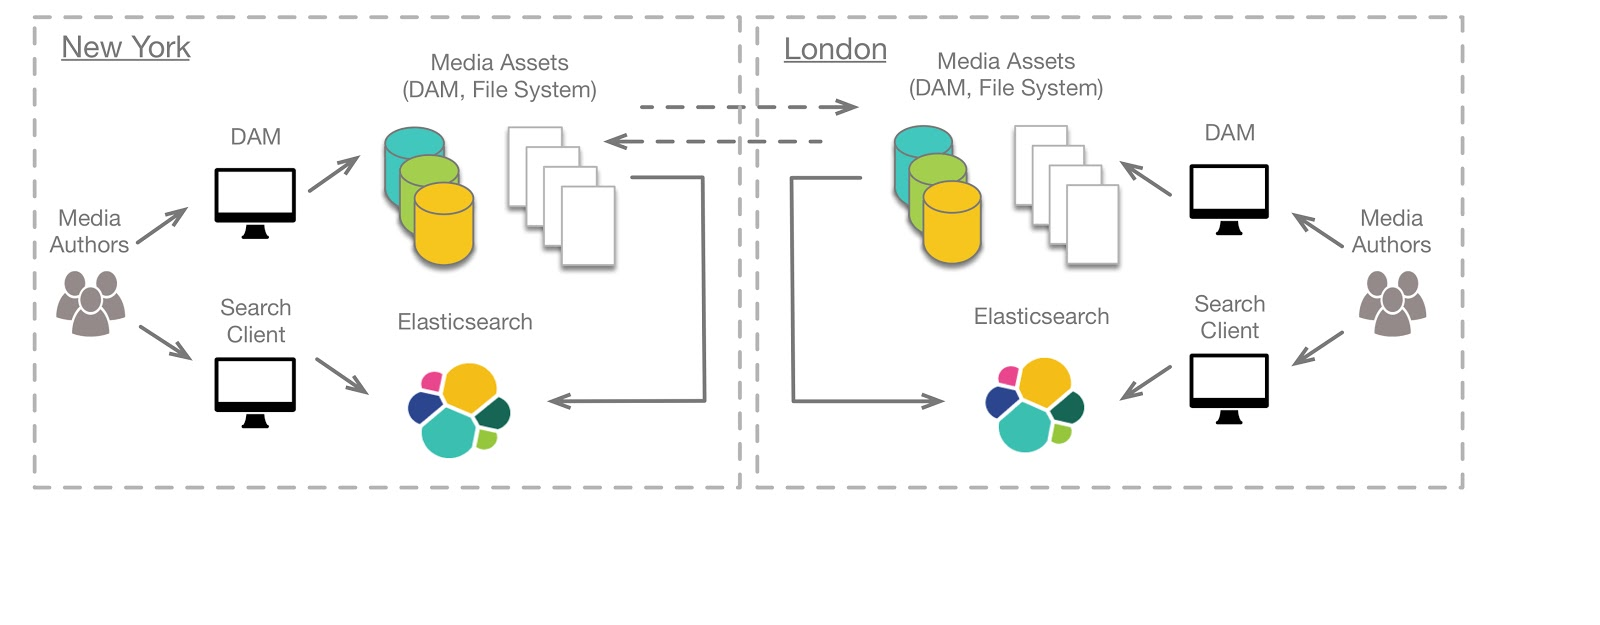 Scaling Elasticsearch Across Data Centers With Kafka | Elastic Blog